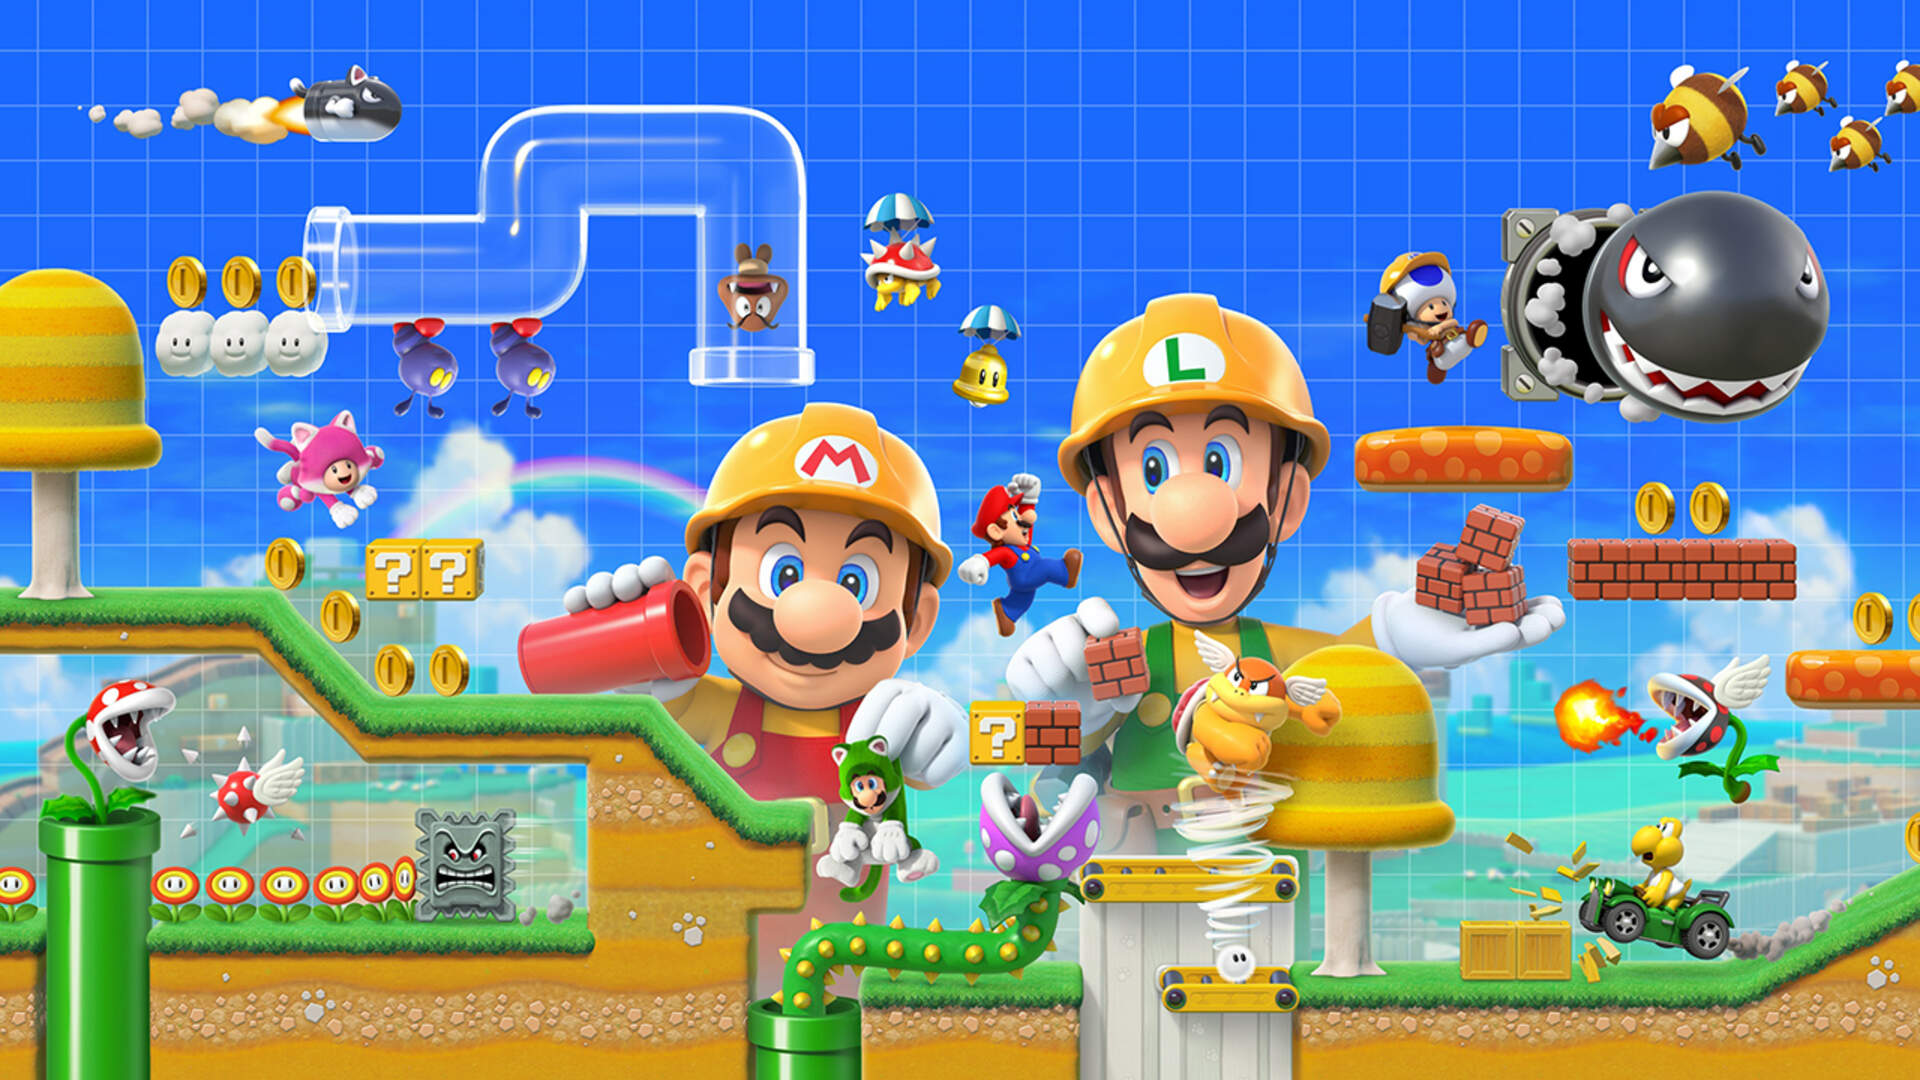 Super Mario Maker 2 Won't Let You Play With Your Friends Online, Nintendo Confirms